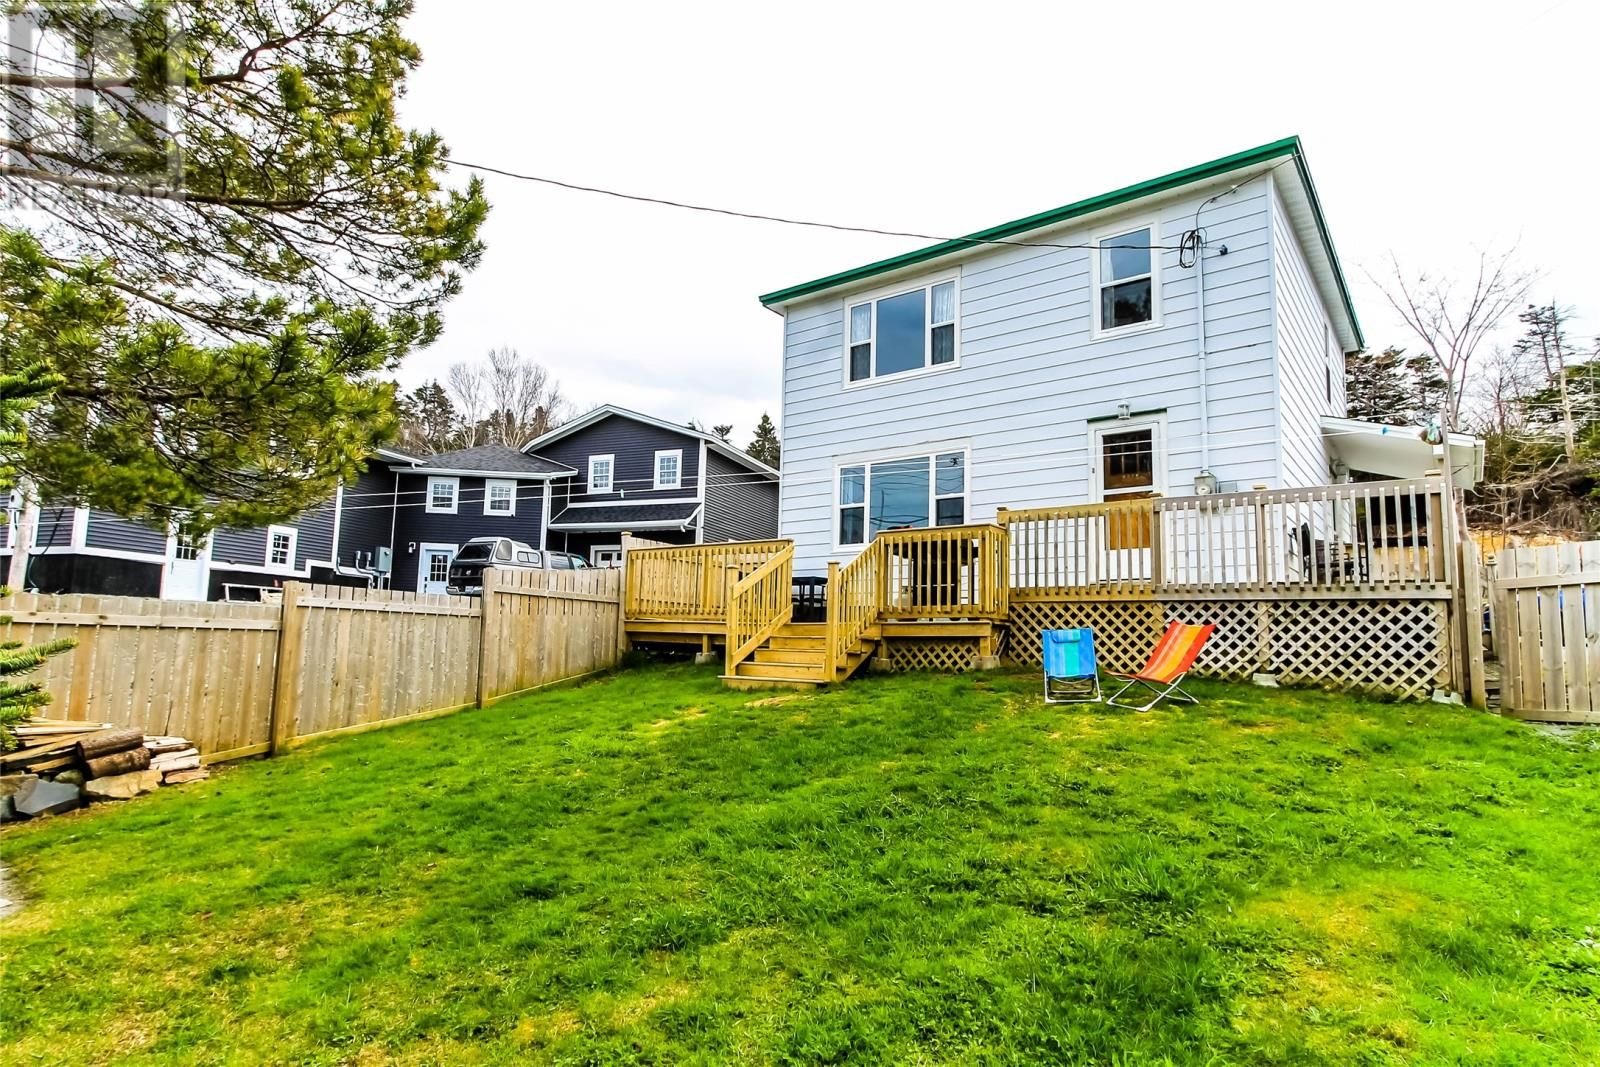 Main Photo: 1661 Portugal Cove Road in Portugal Cove: House for sale : MLS®# 1230741